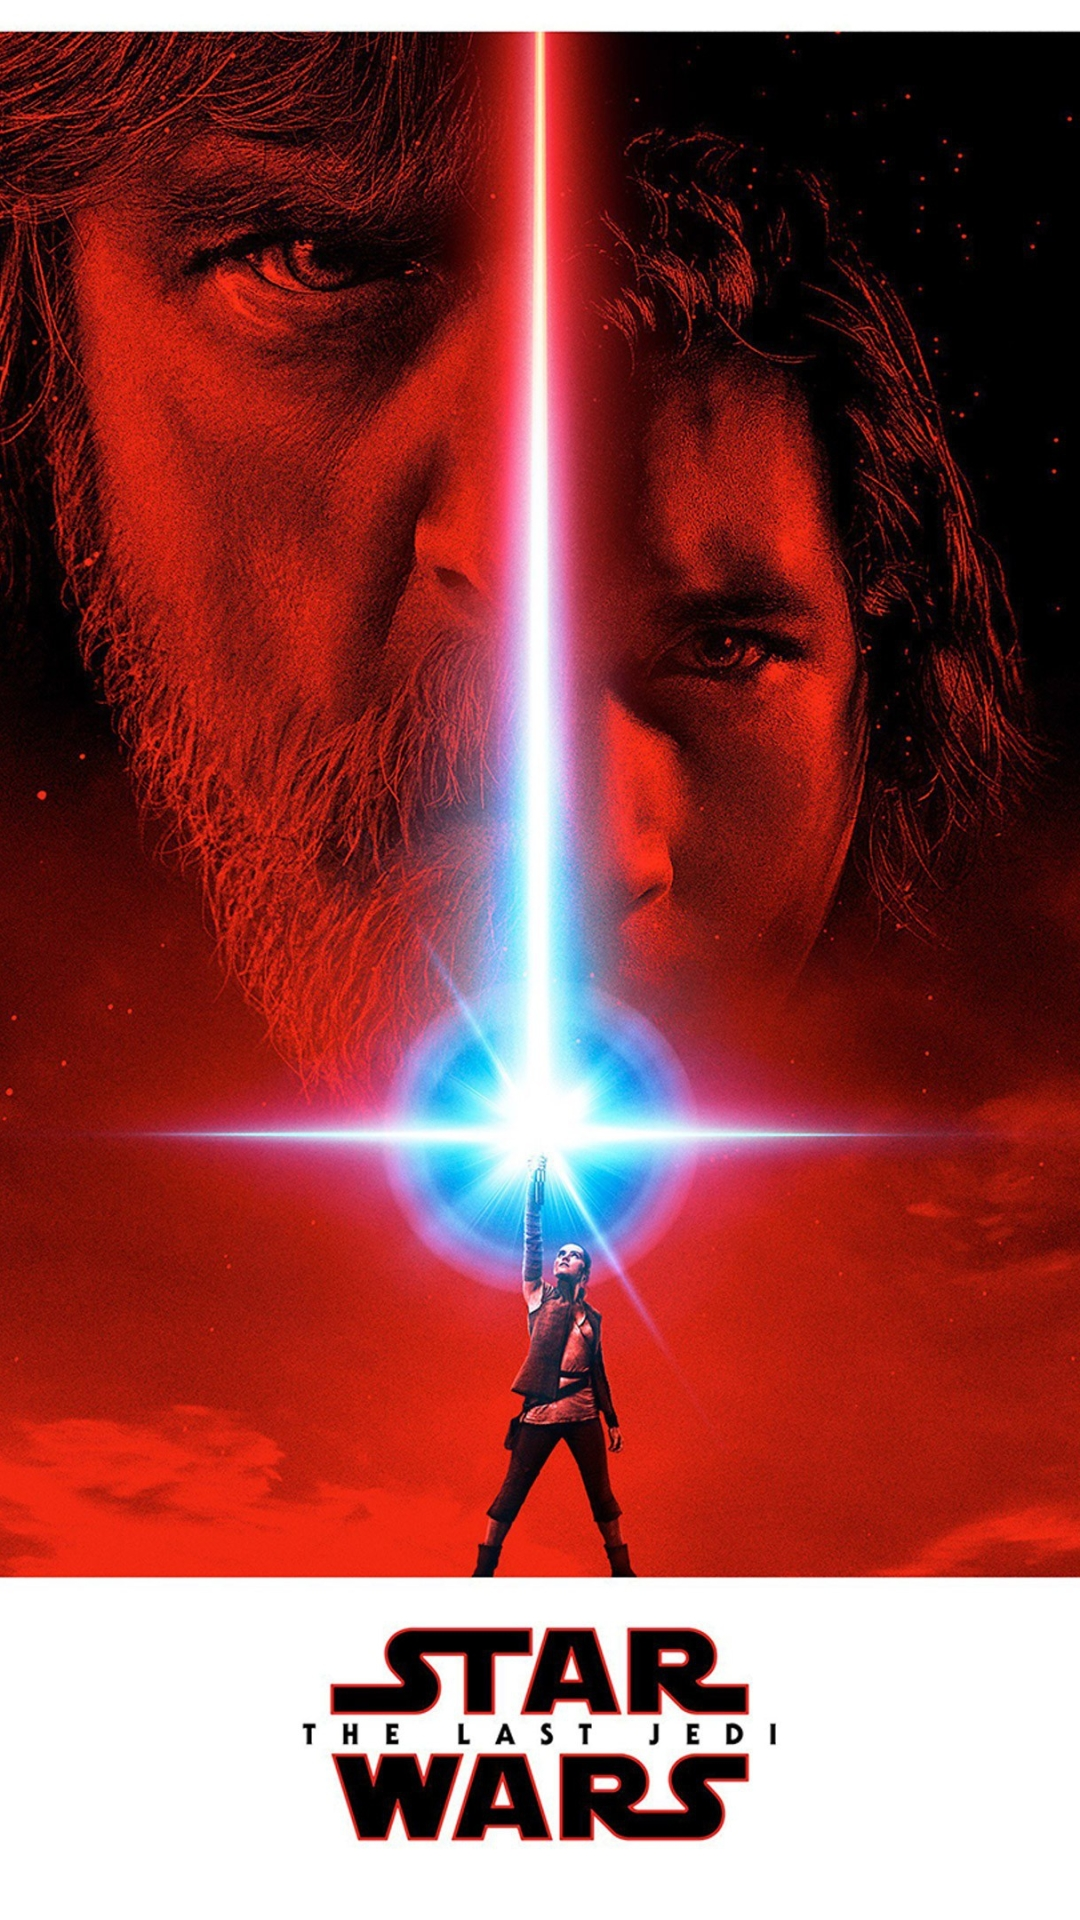 Movie Star Wars The Last Jedi 1080x1920 Wallpaper Id 675899